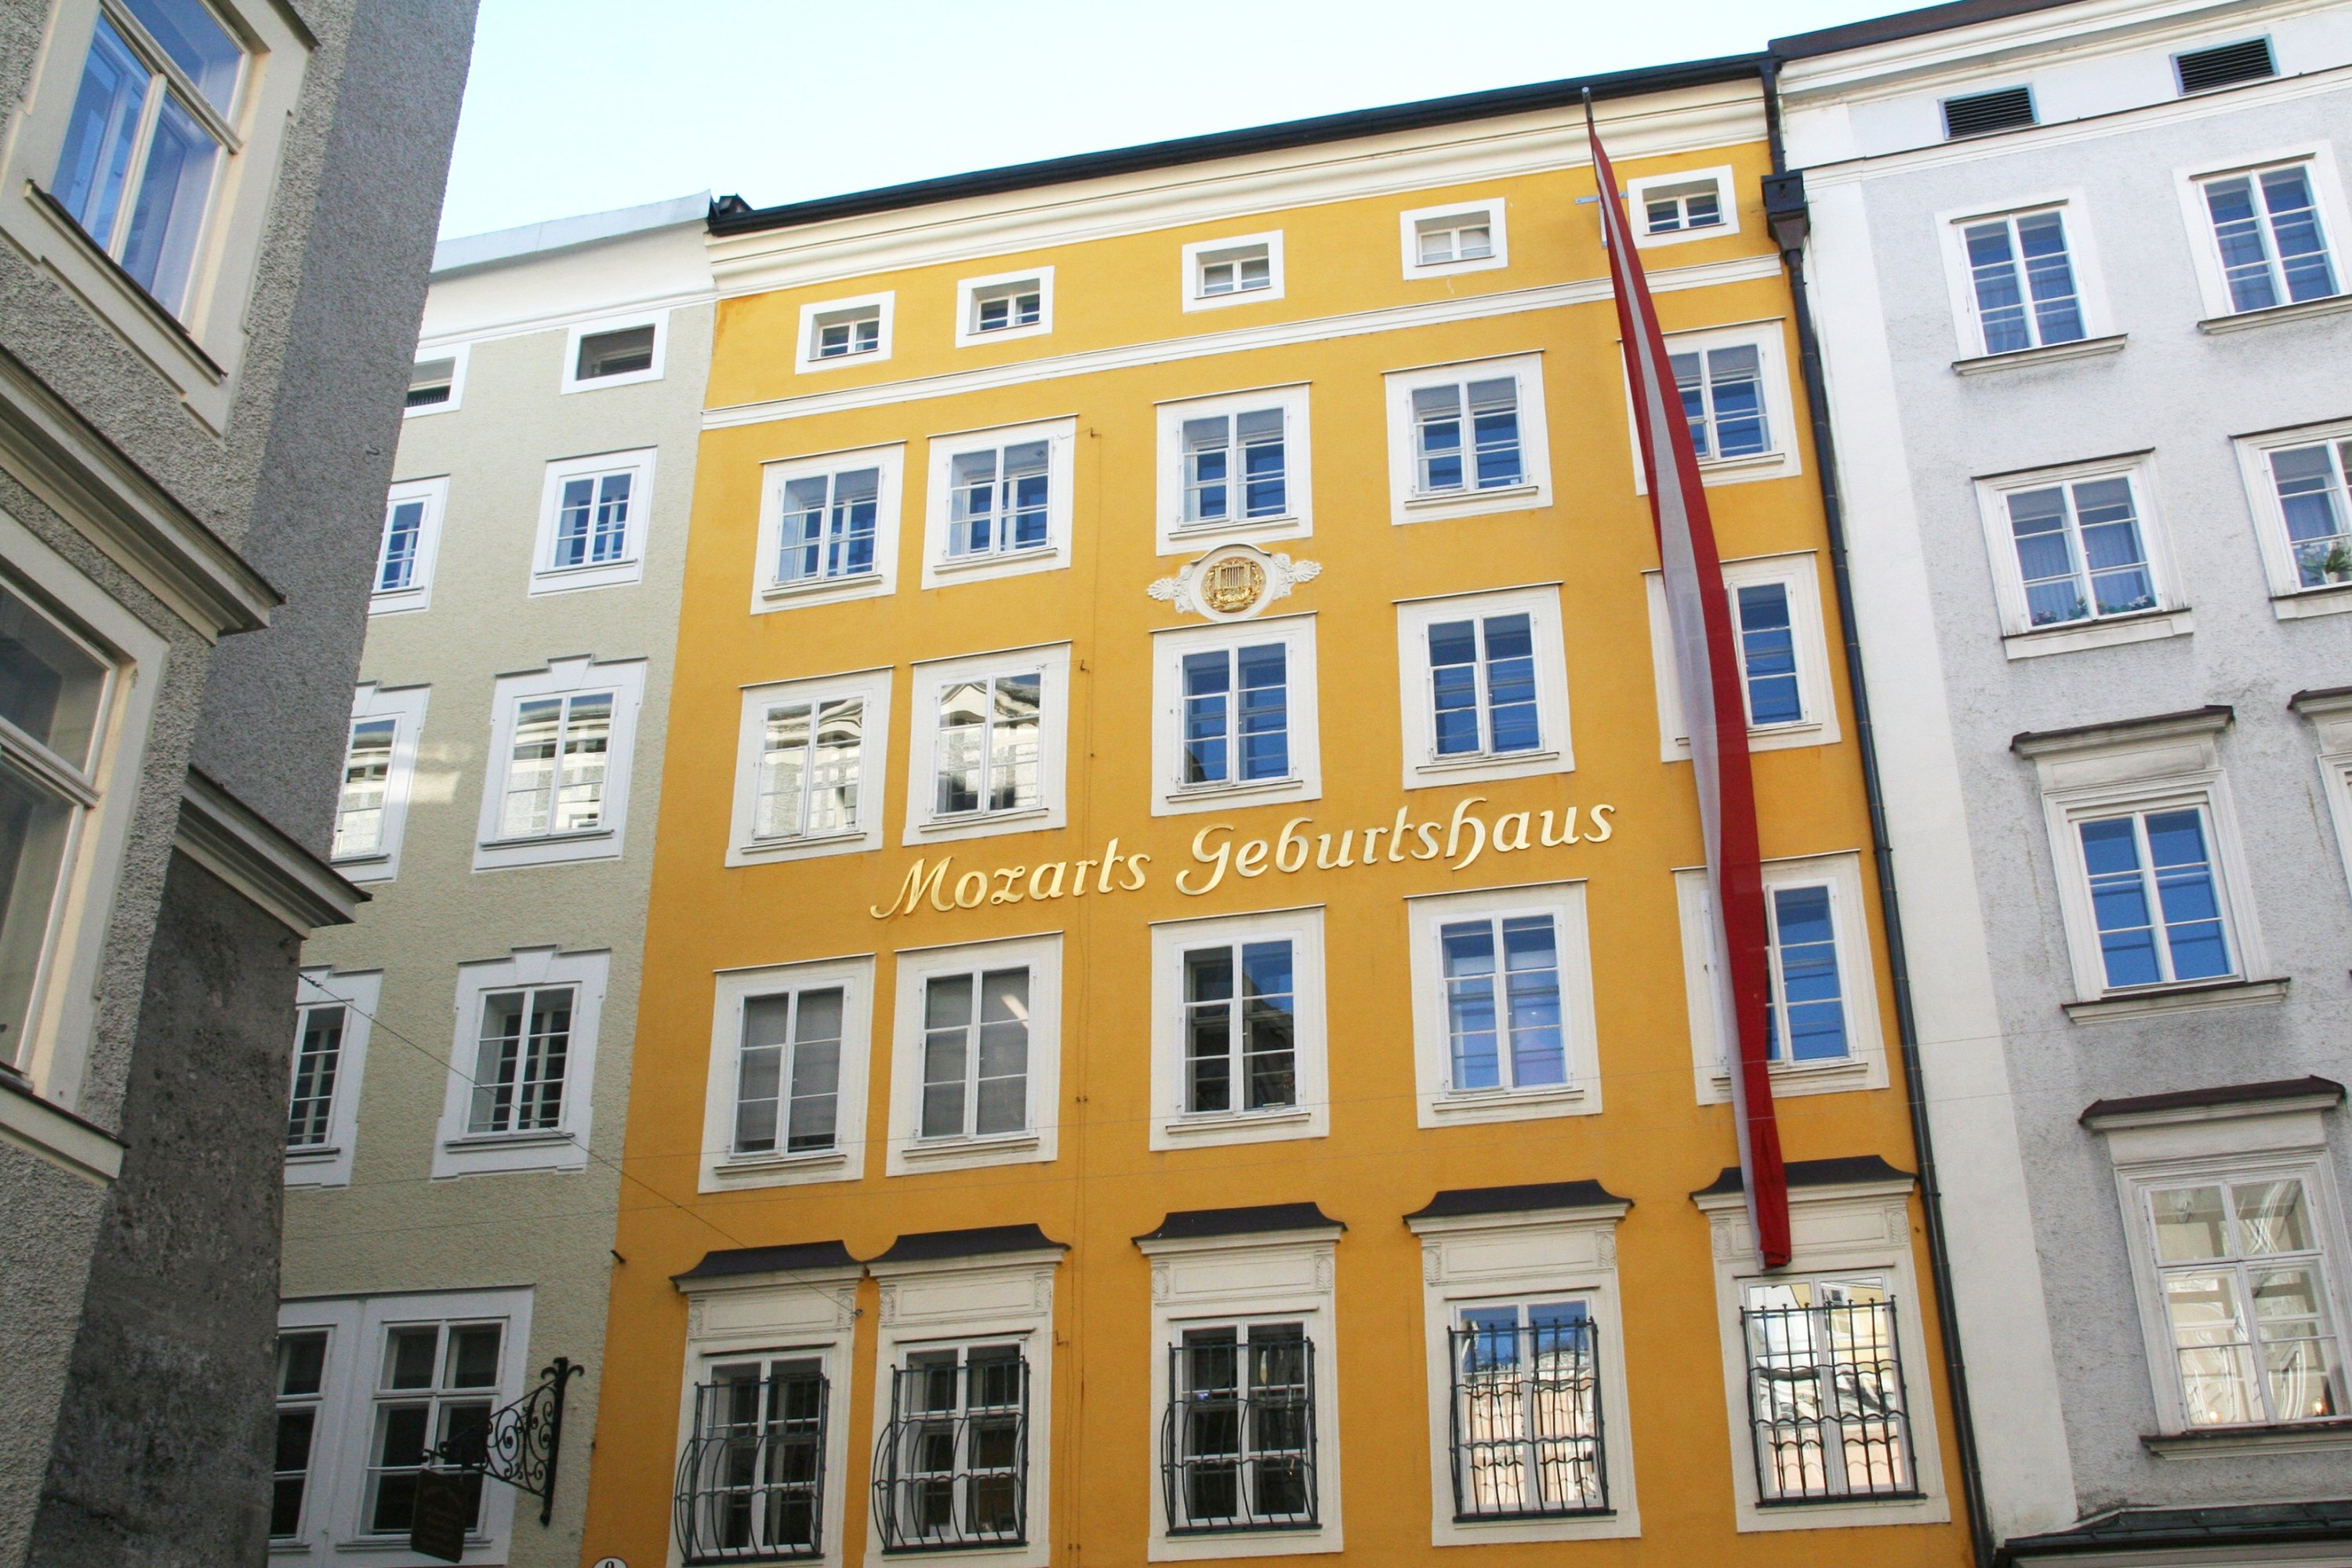 The birthplace of music prodigy Wolfgang Amadeus Mozart stands in the old town of Salzburg. Today, the house is one of the most visited museums in Austria. (Photo by Lothar Ferstl via dpa)